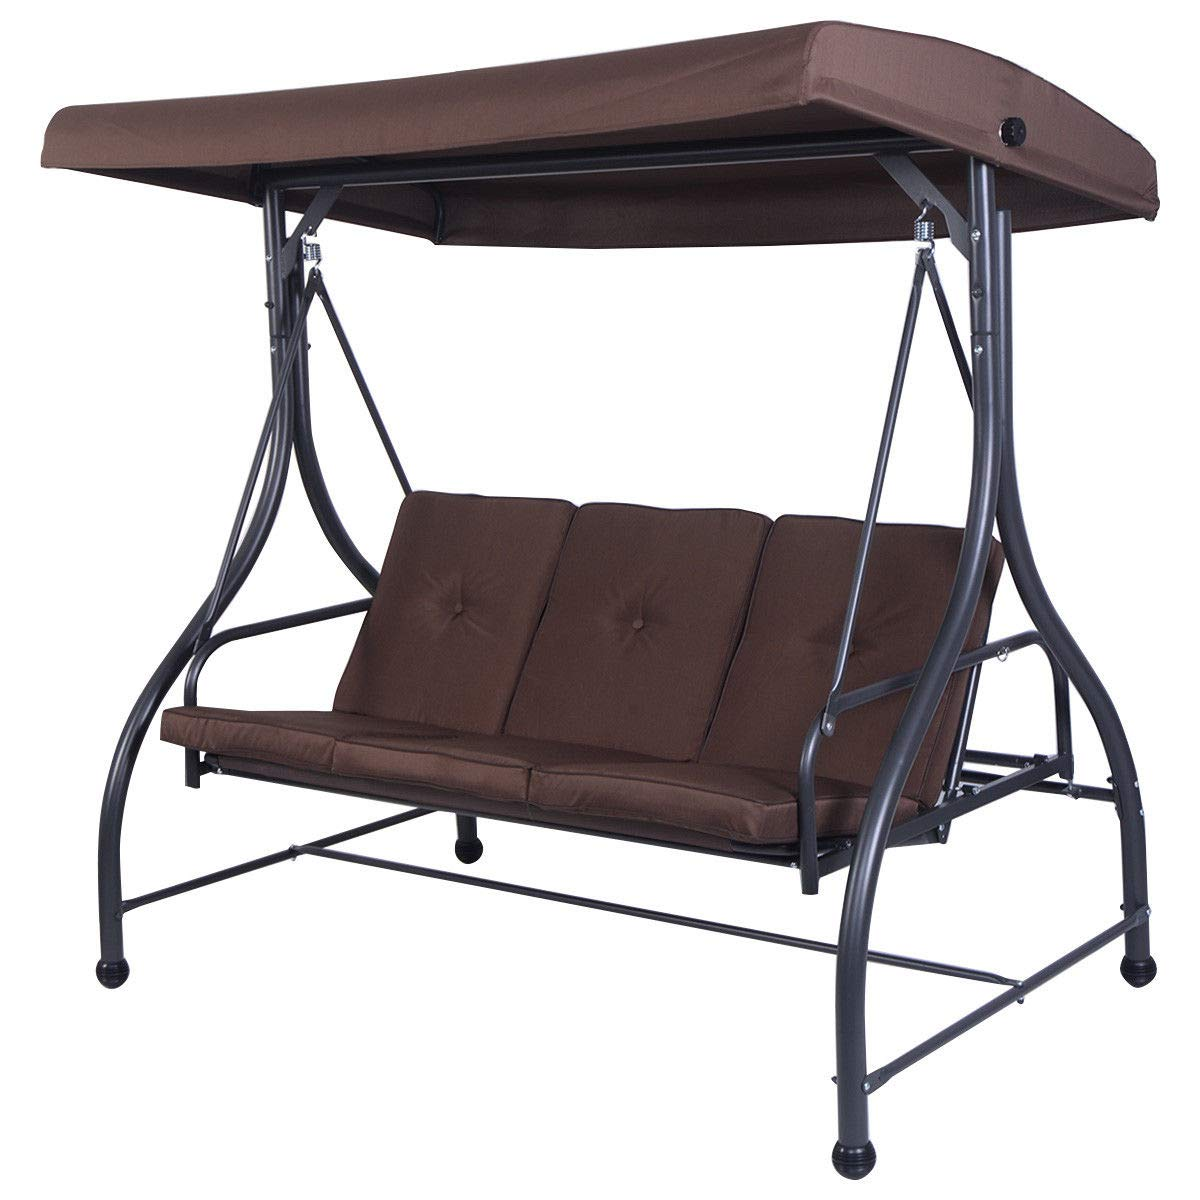 Globe House Products GHP 73''x44''x68'' 750-Lbs Capacity Adjustable Back Flat Bed Swing Bench w Canopy